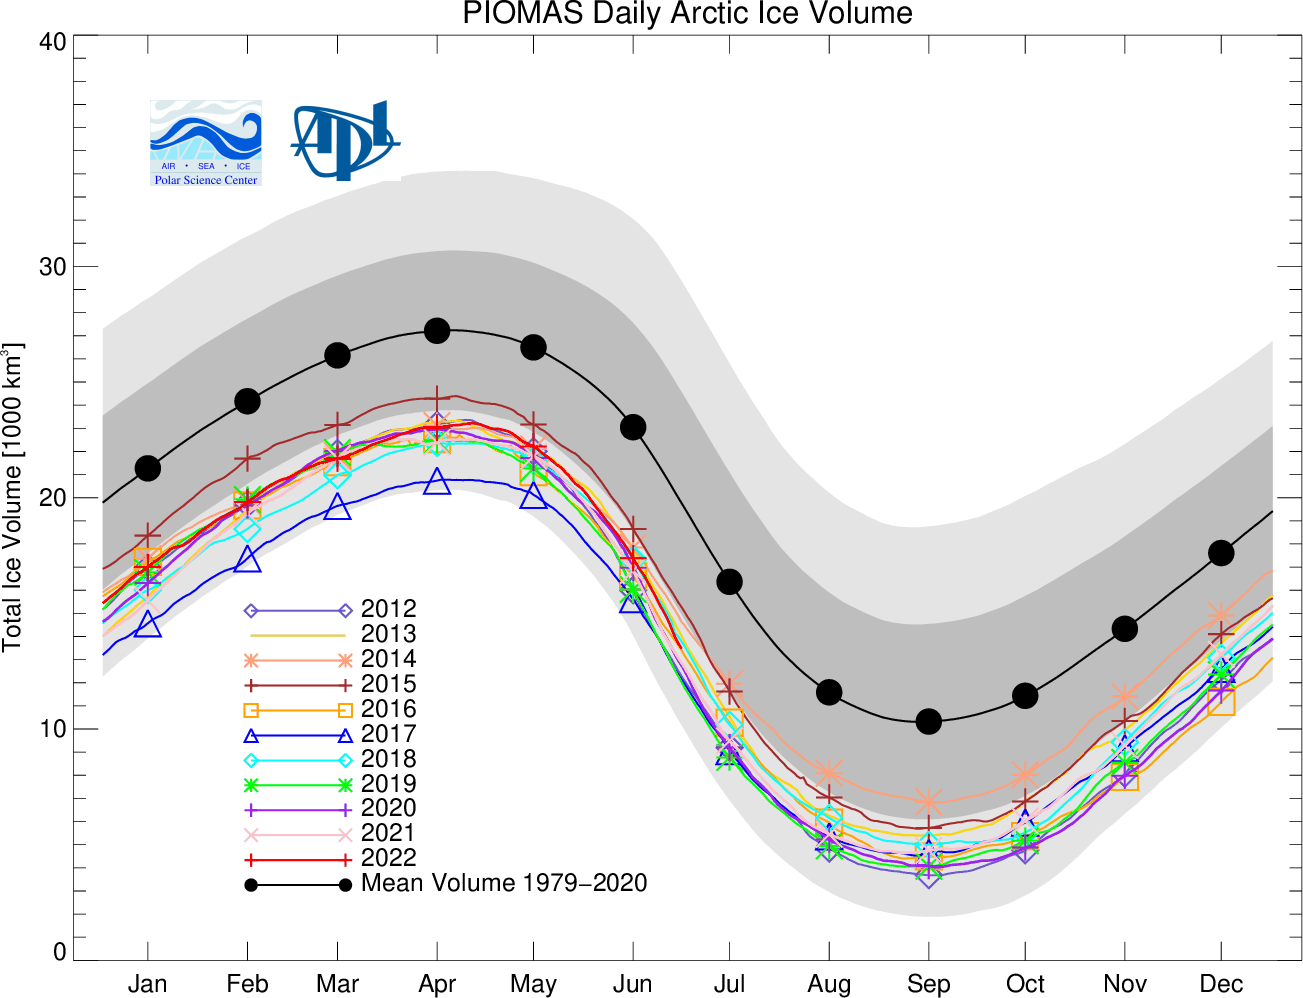 Daily Ice Volume Anomaly Piomas